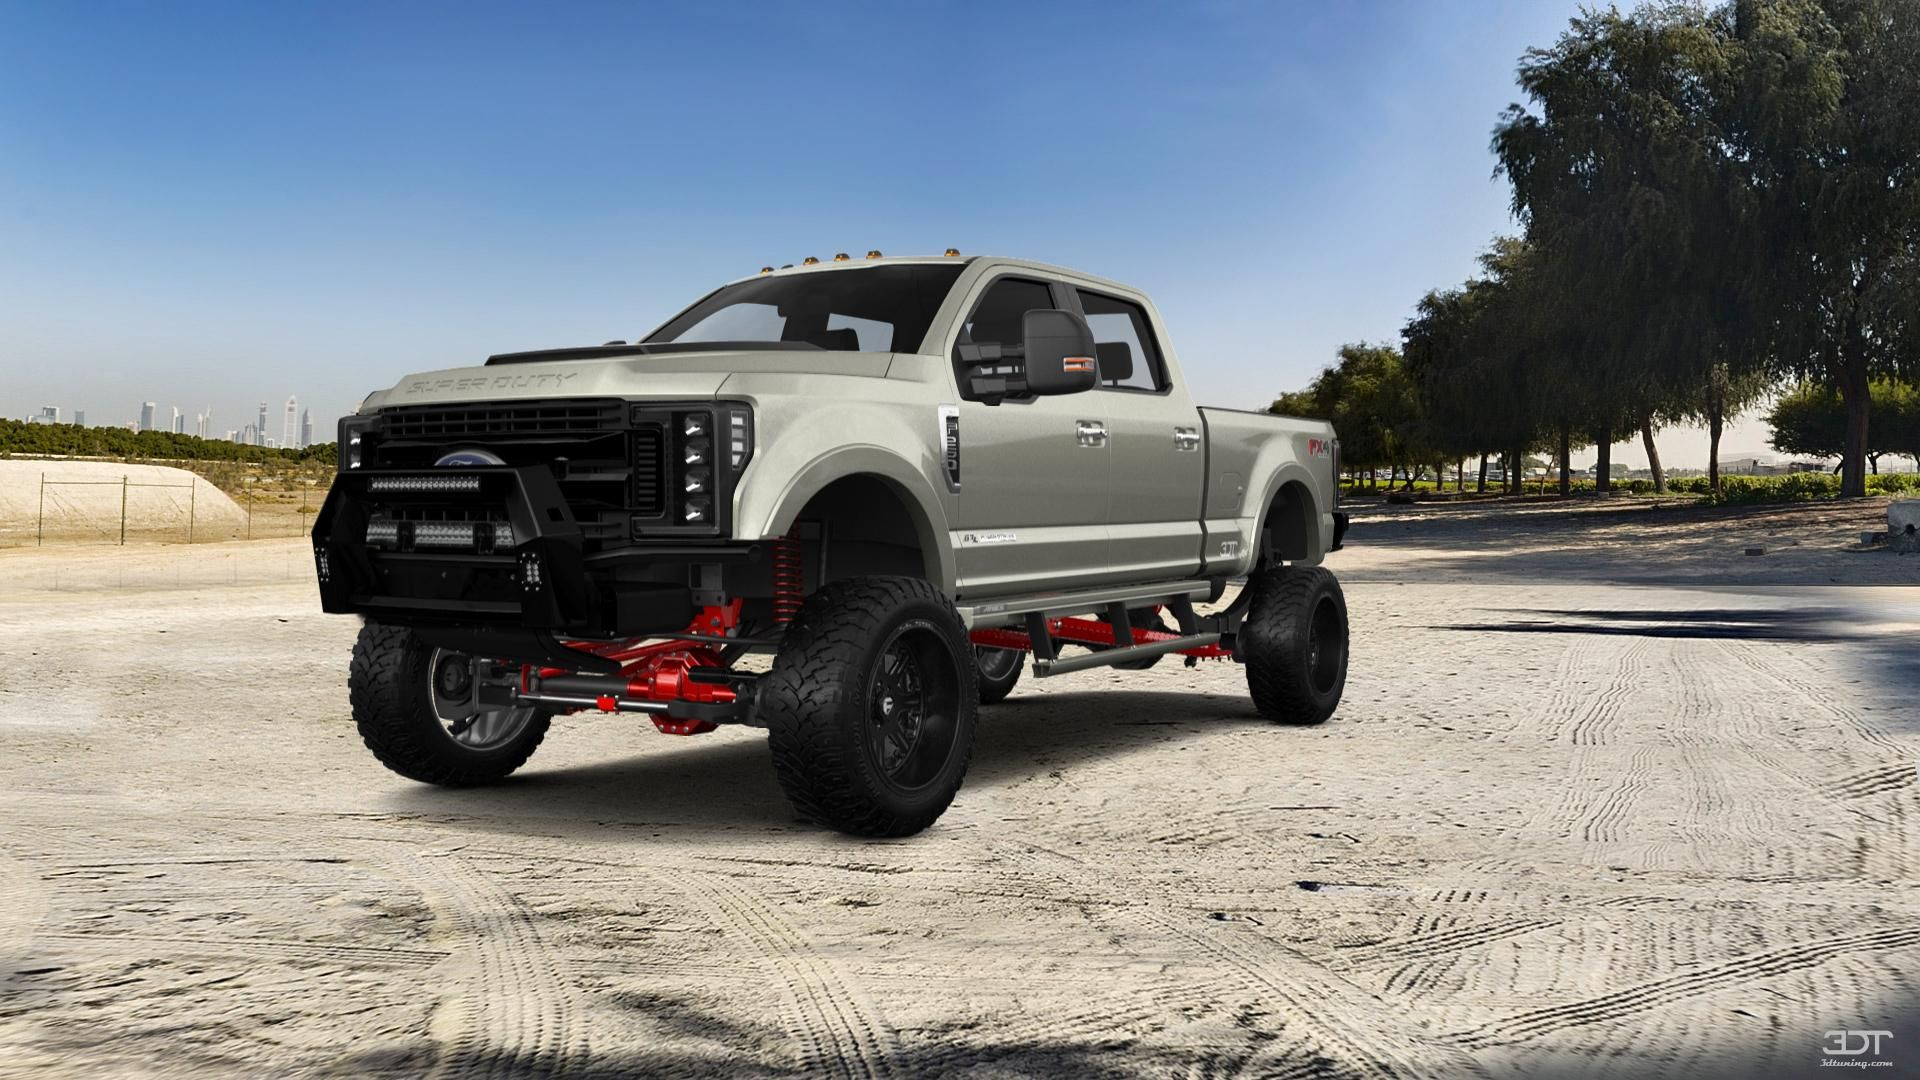 Checkout My Tuning Ford F 250 2018 At 3dtuning 3dtuning Tuning Ford Fender Flares Tonneau Cover